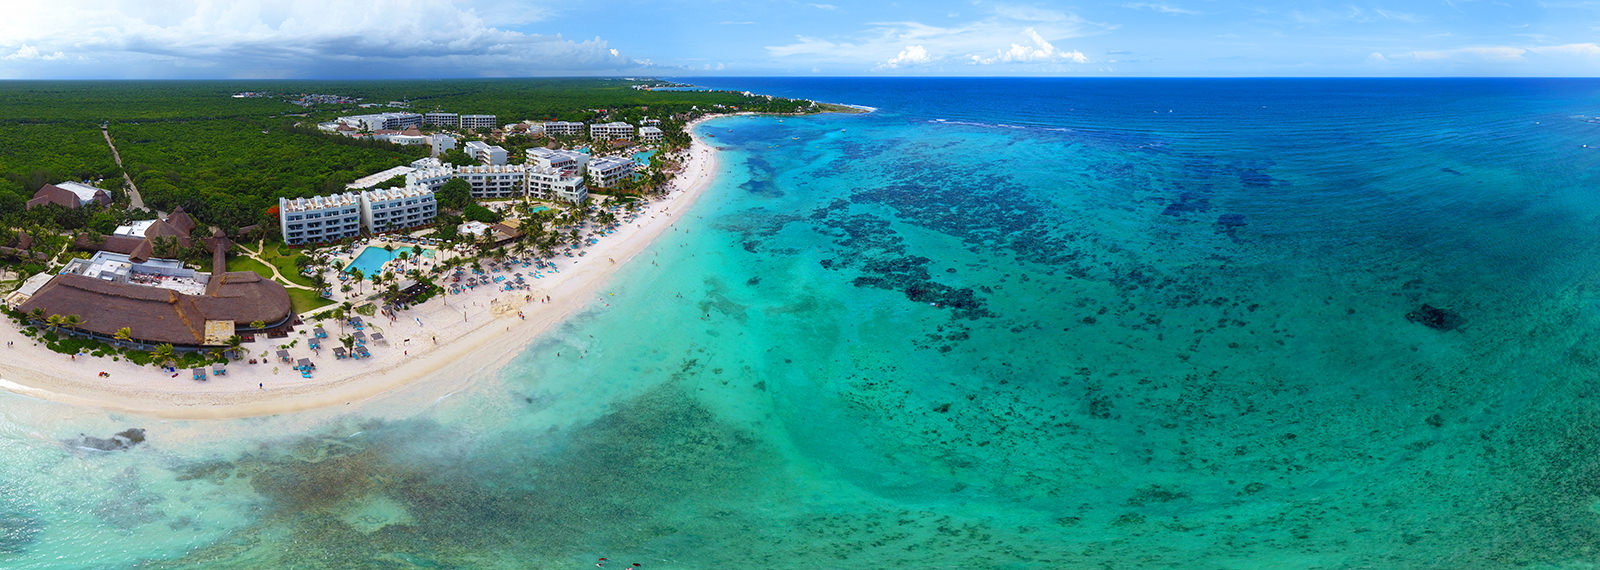 Akumal bay, Riviera Maya - Virtual tour